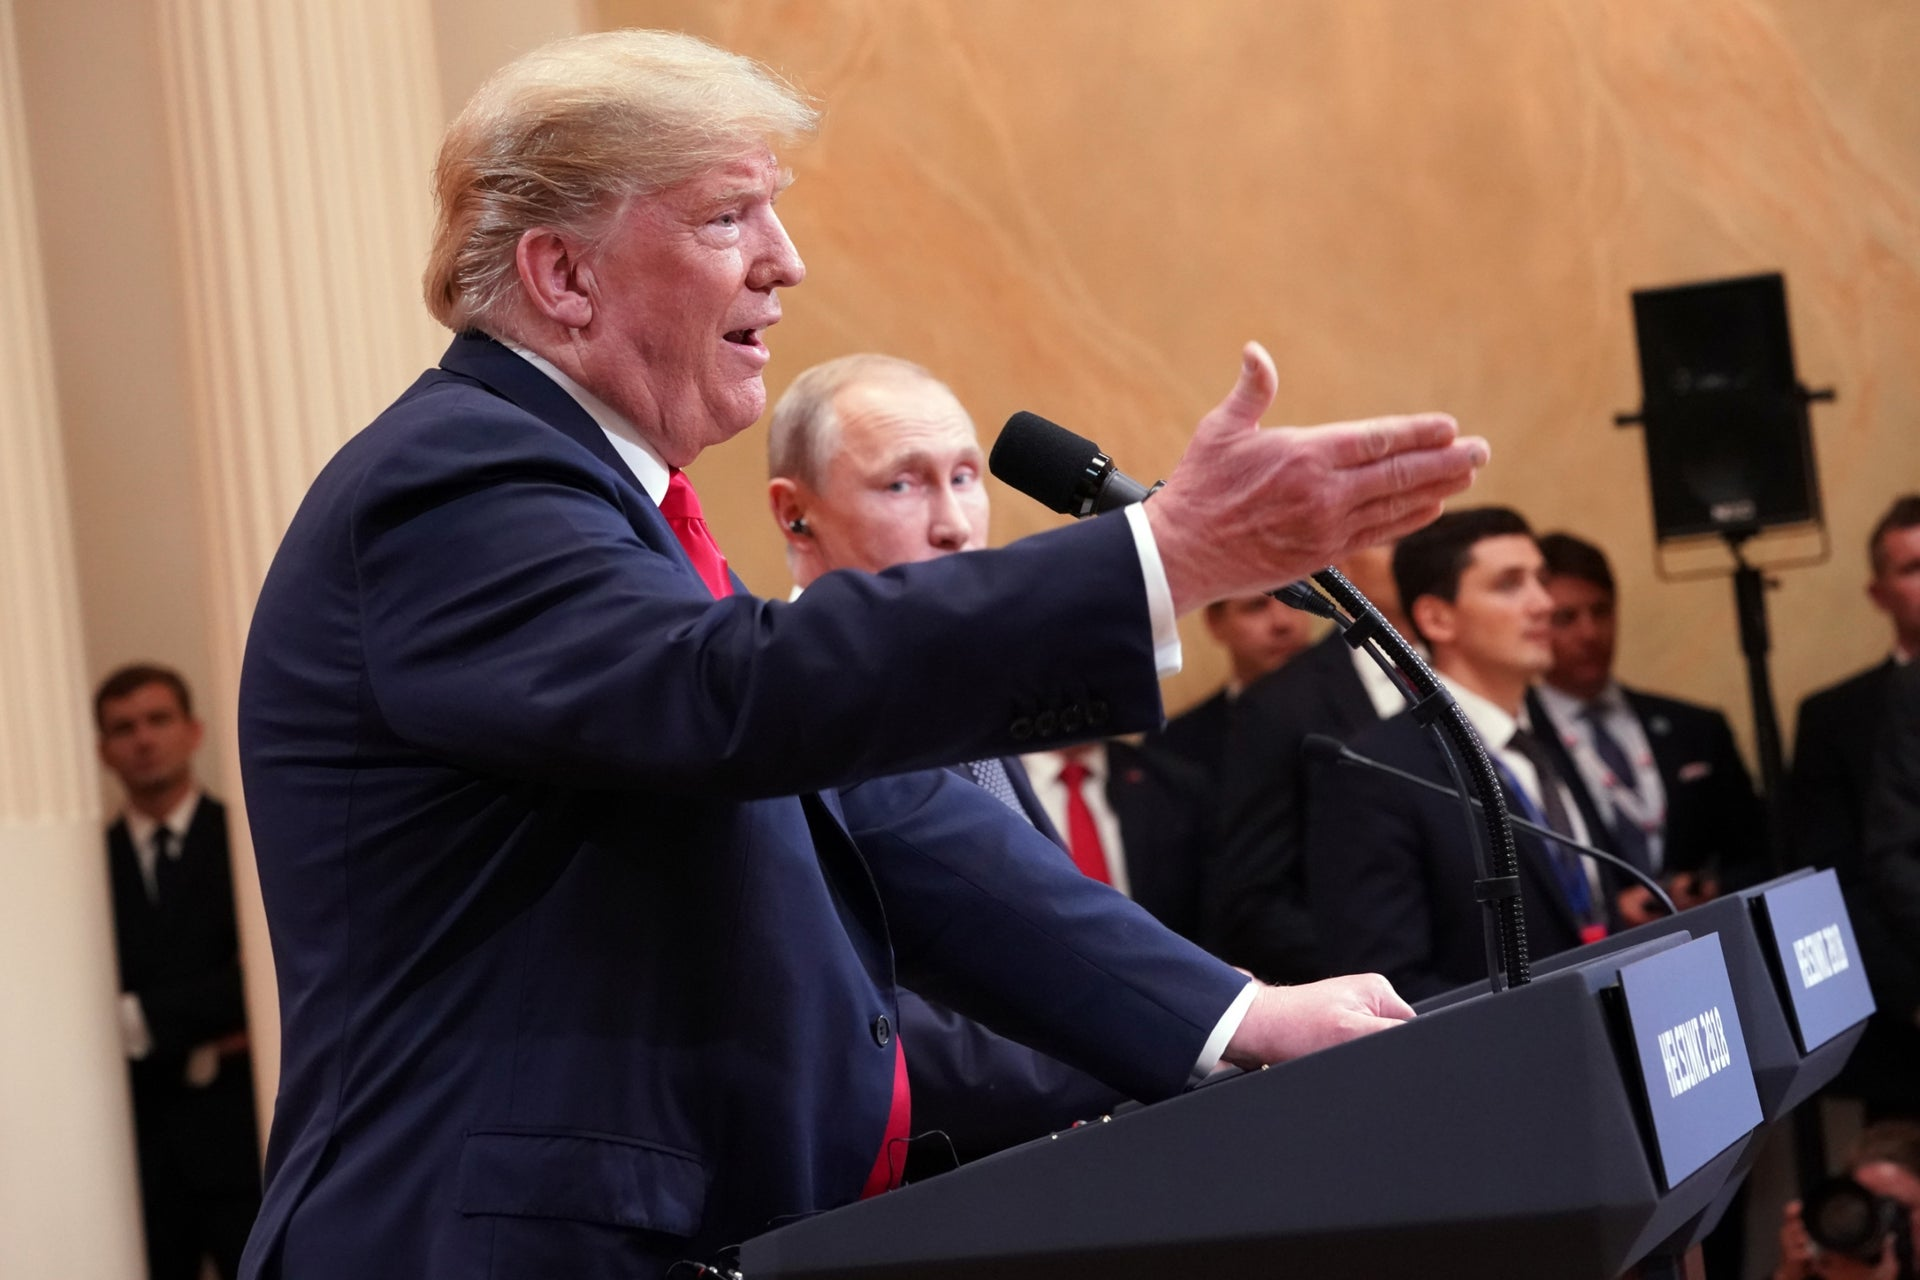 Trump and Putin at their joint press conference in Helsinki, in July.